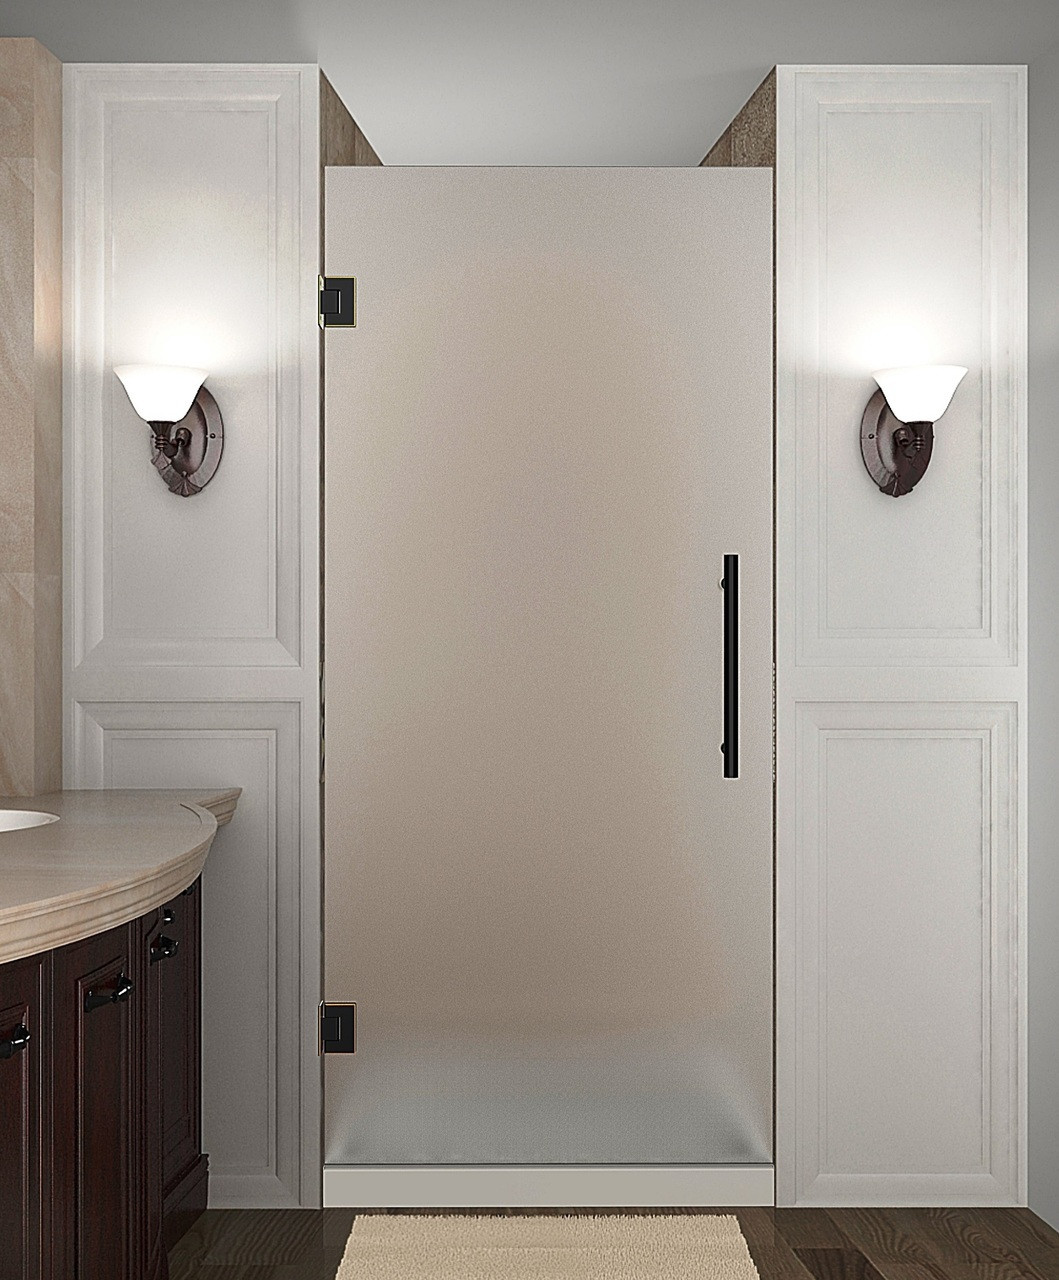 Aston SDR995F-ORB-28-10 Cascadia 28 In x 72 In Completely Frameless Frosted Glass Shower Door In Oil Rubbed Bronze